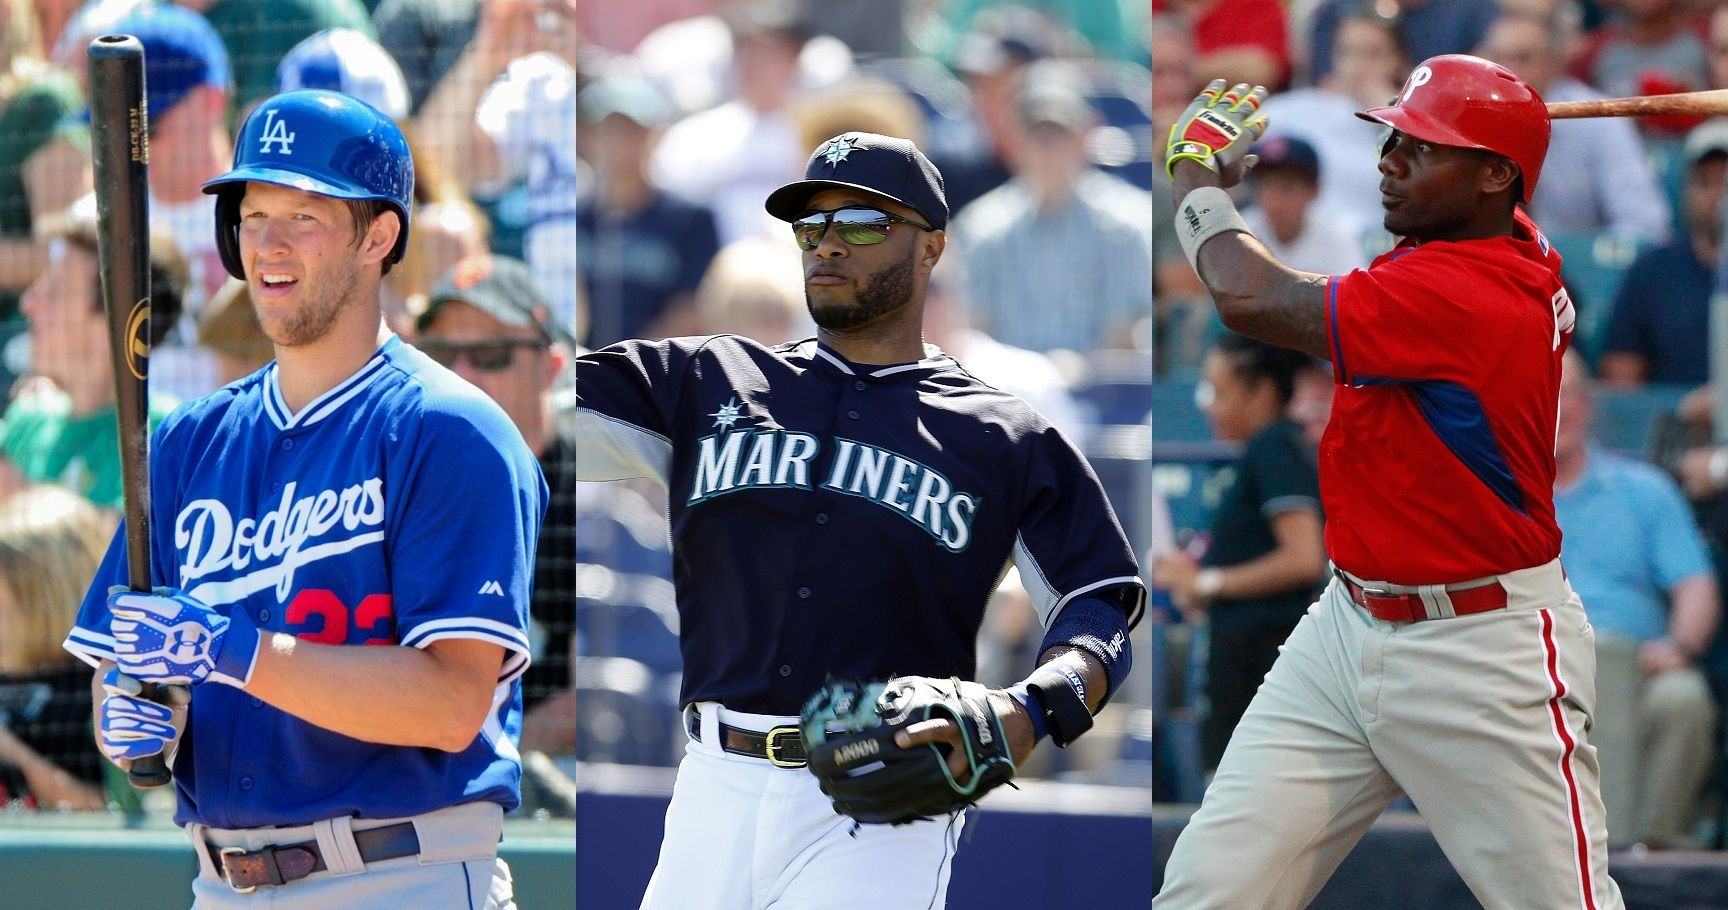 are major league baseball players overpaid Mlb players earned more than $4mm on average in 2017, with some players' salaries exceeding $30mm for most people, that's an unfathomable amount of money many people feel that baseball players and other athletes are overpaid, with the median american full-time worker earning around $45k per year.